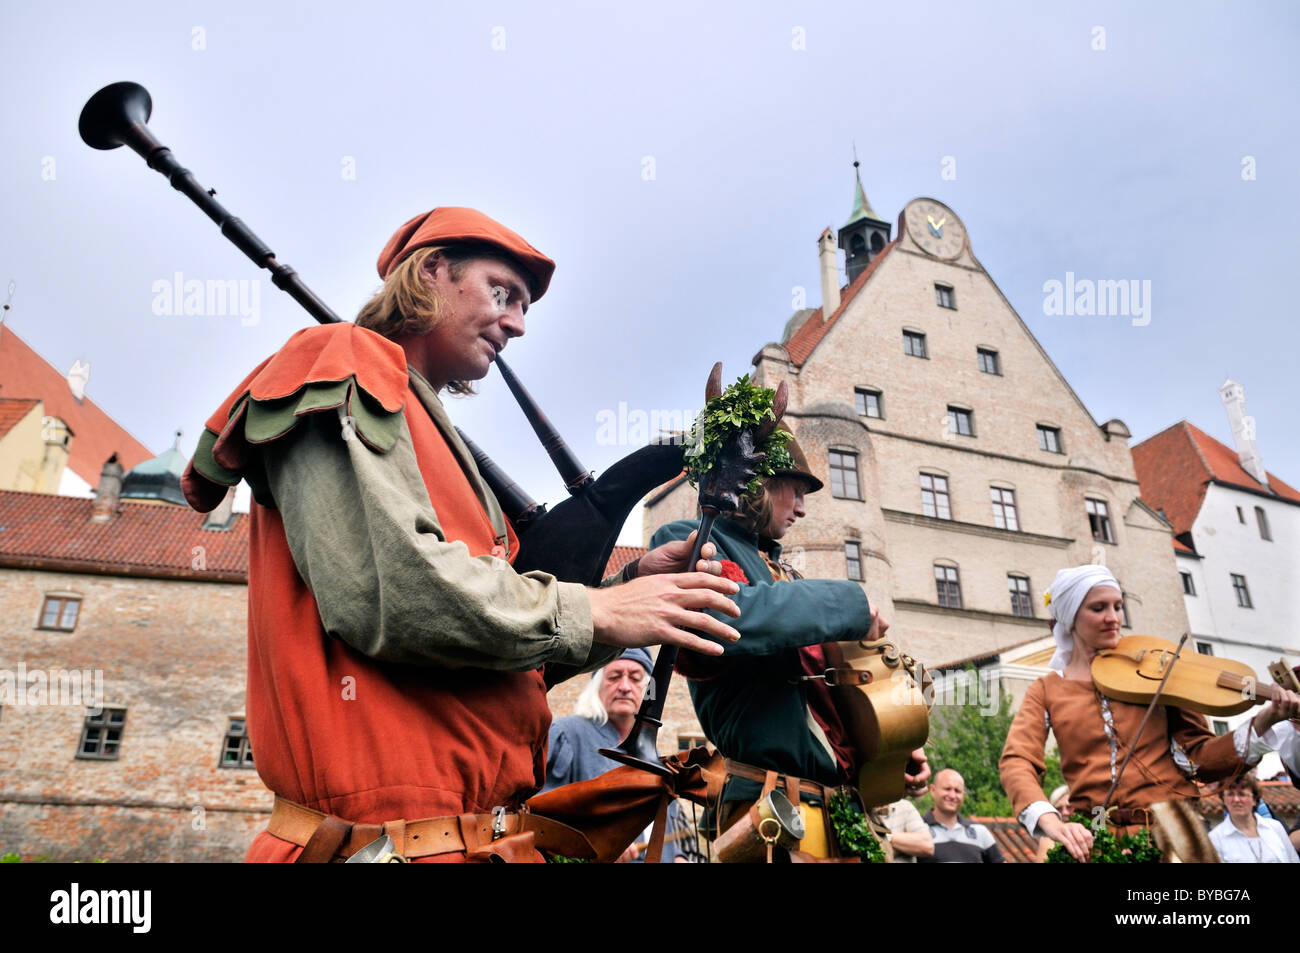 Musicians playing instruments at the Landshut Wedding 2009, a large medieval pageant, Landshut, Lower Bavaria, Bavaria - Stock Image